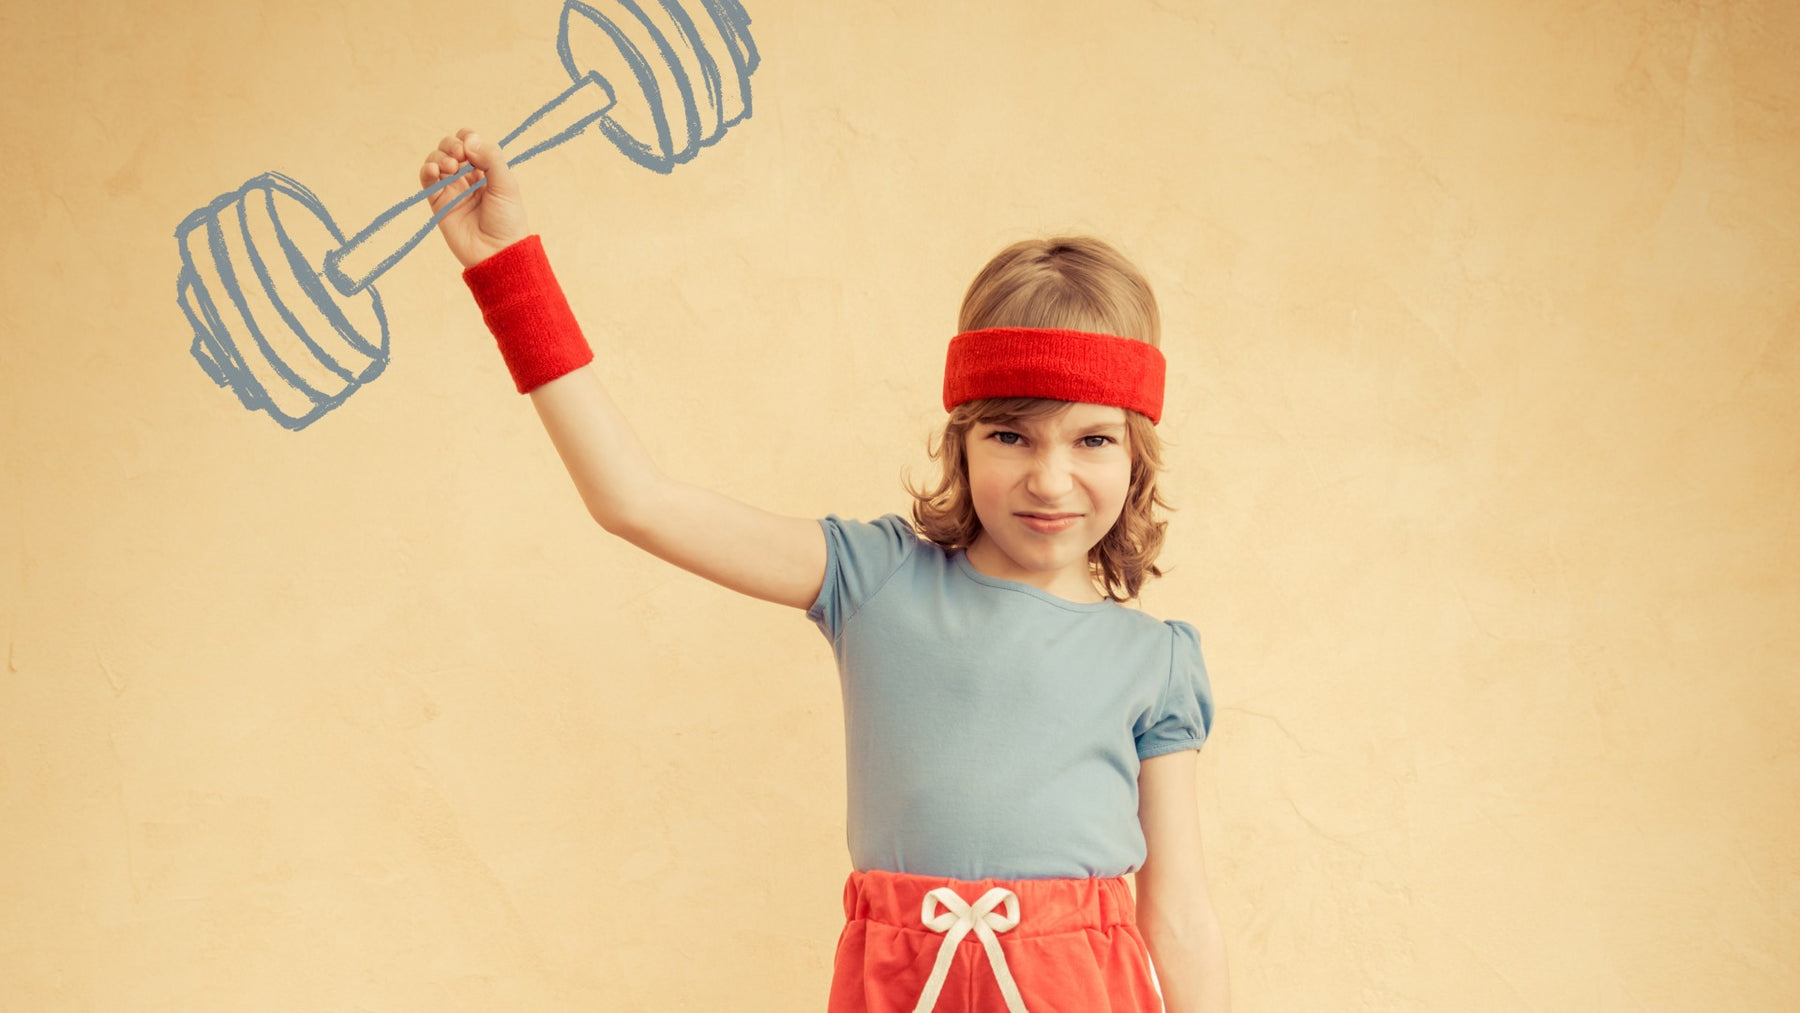 Exercise for Kids: Is Strength Training Safe?